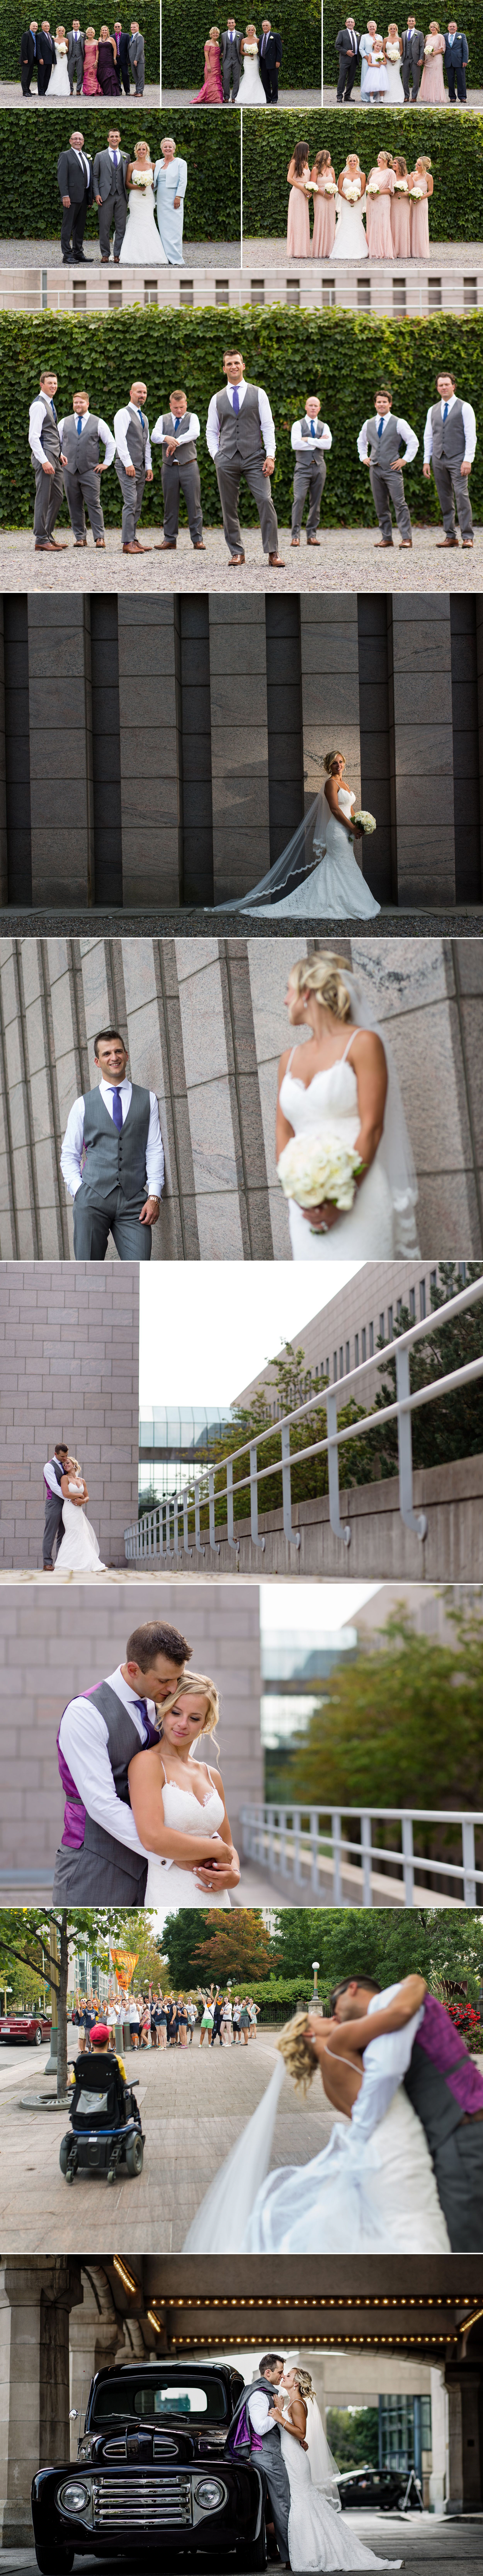 Wedding party and couples photographs around the national art gallery and chateau laurier.